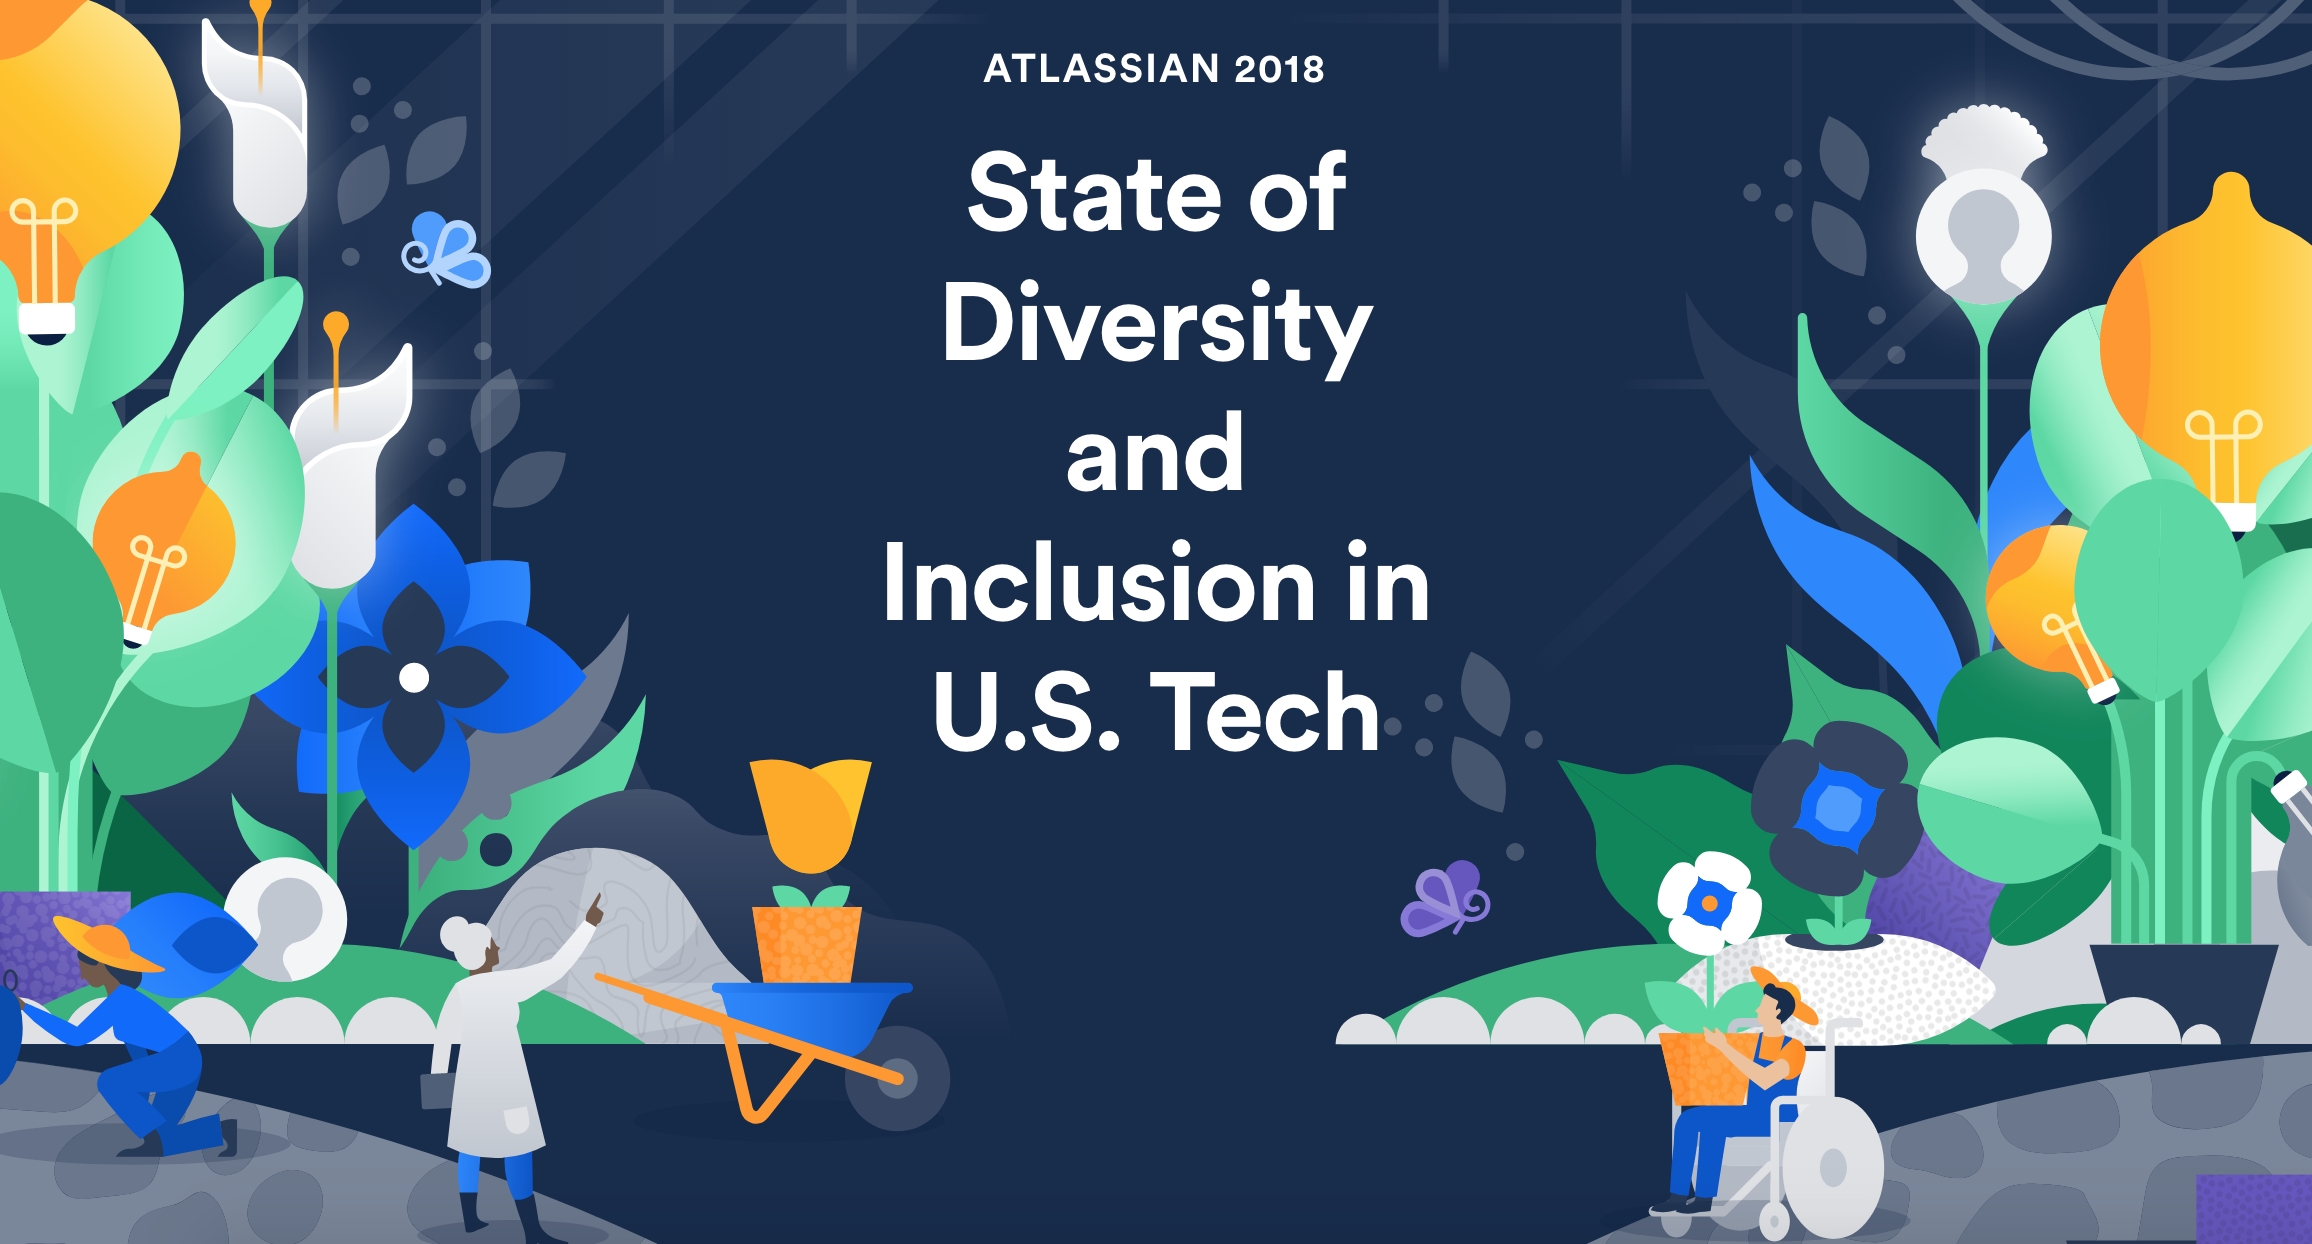 Image courtesy  Atlassian   State of Diversity Report